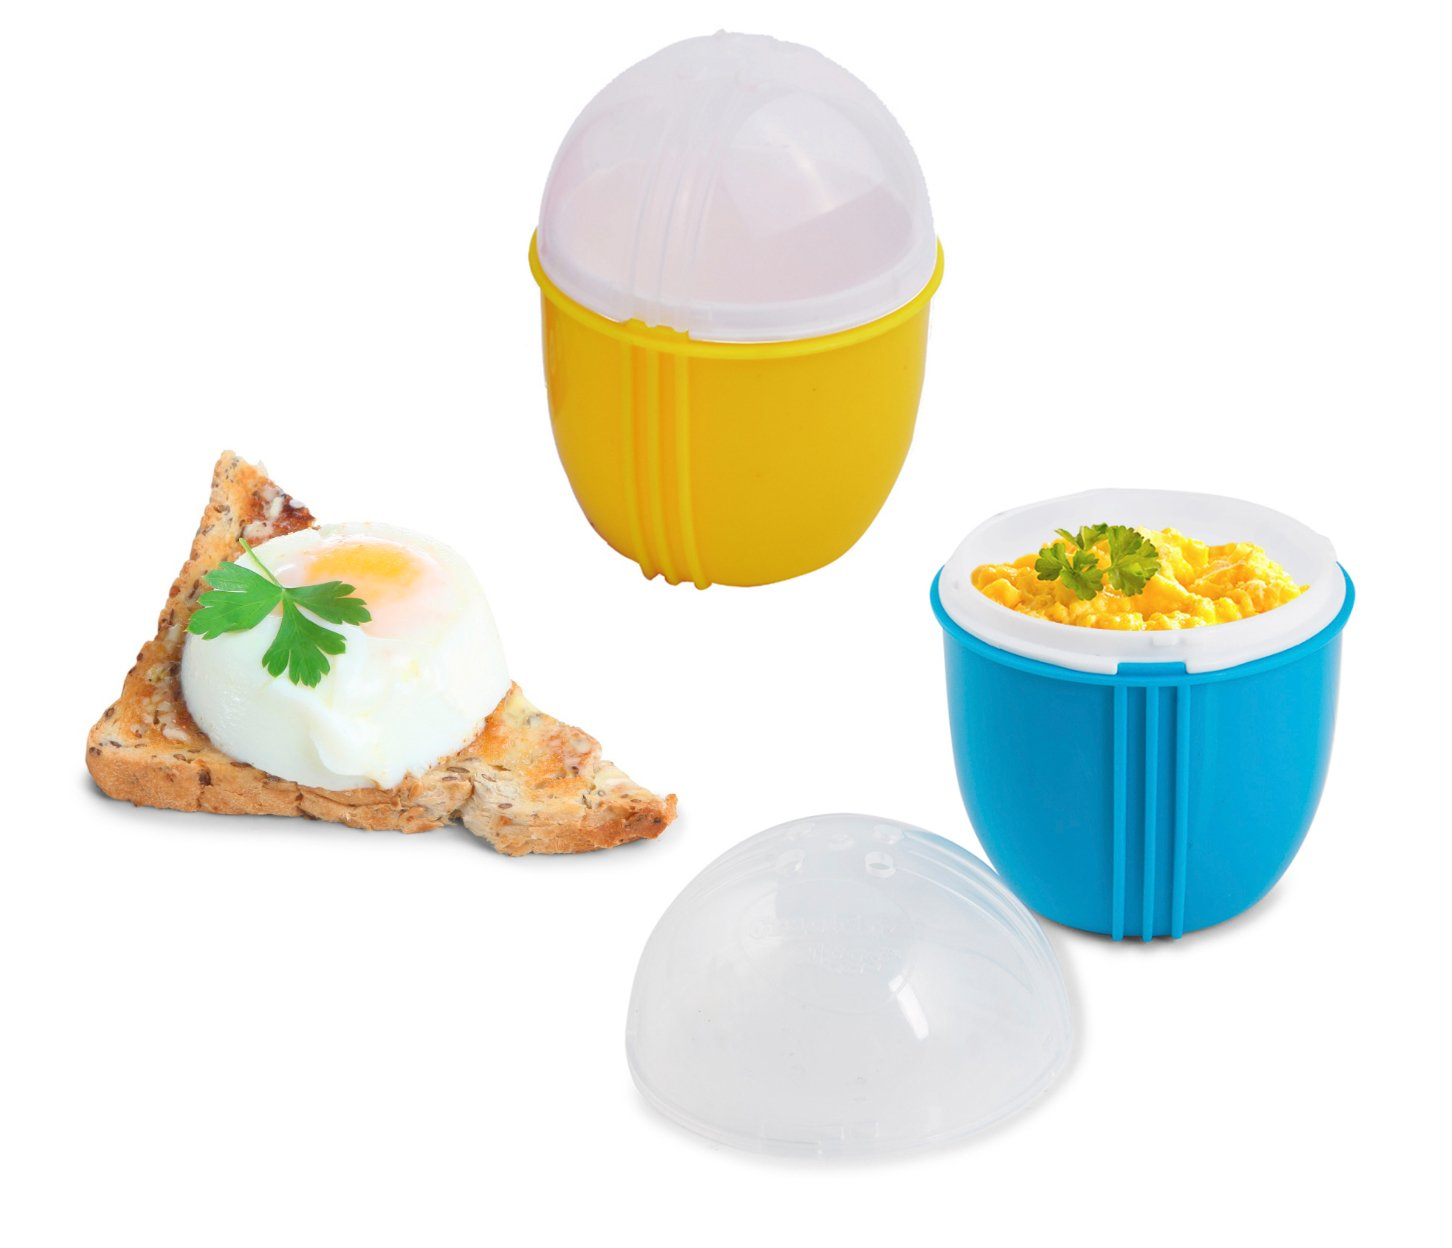 Zap Chef Microwave Egg Cooker Pack of 2, Healthy Scrambled Eggs,1 Minute Egg Poacher, Cool Touch Omlette Maker, 100% Food Safe BPA Free, Color May Vary by Zap Chef